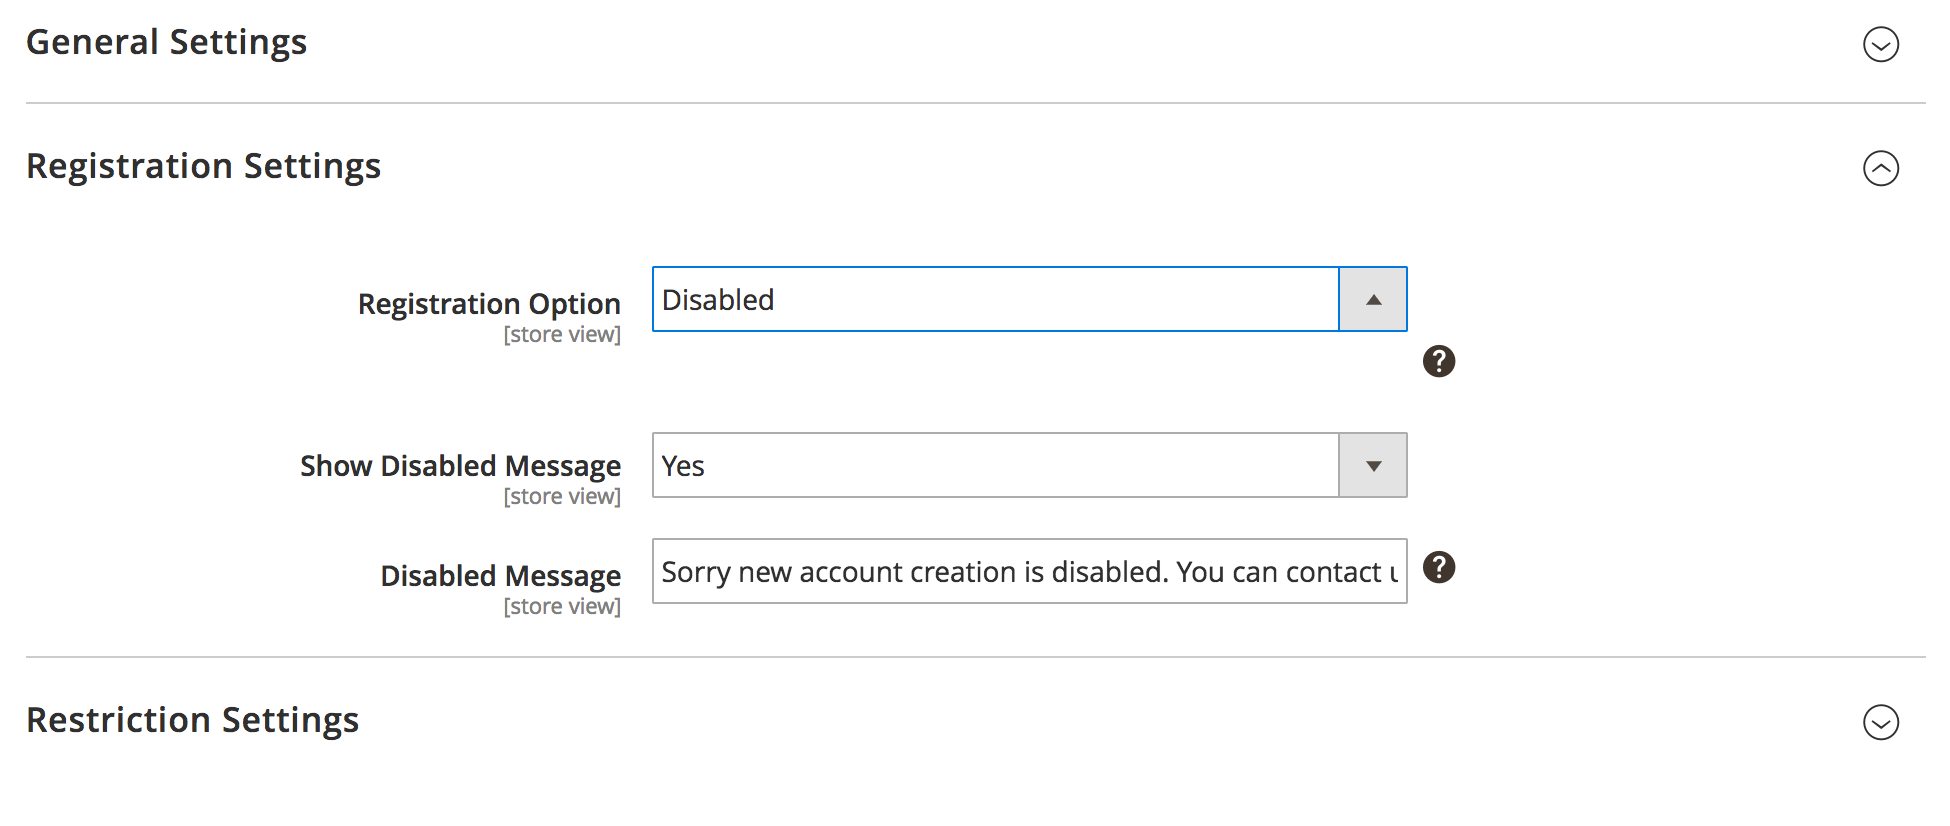 Registration Settings: Disabled Case